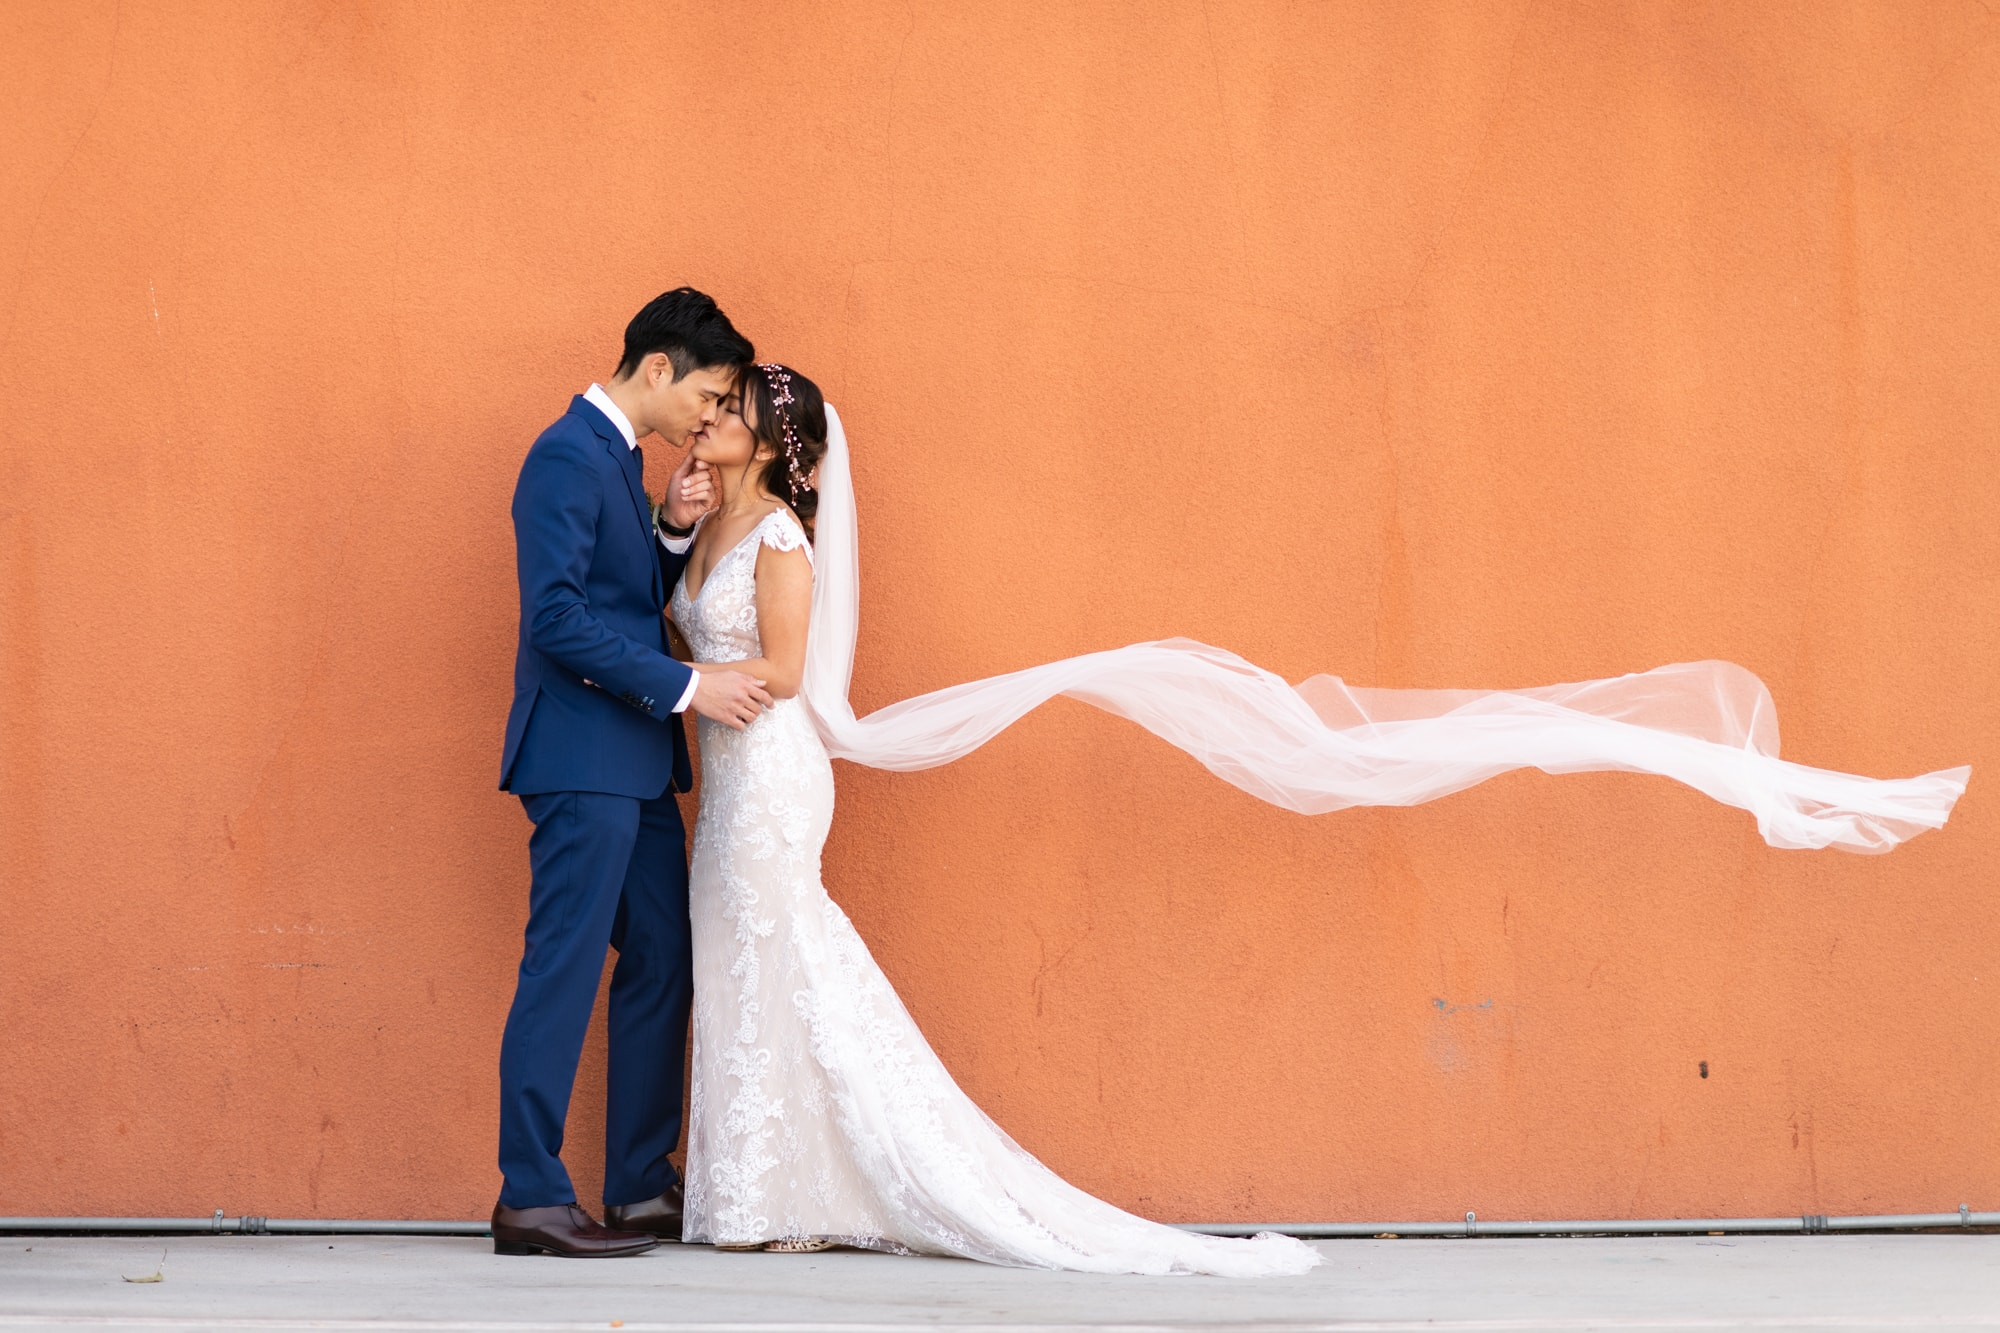 Bride and groom in downtown San Diego after their wedding.